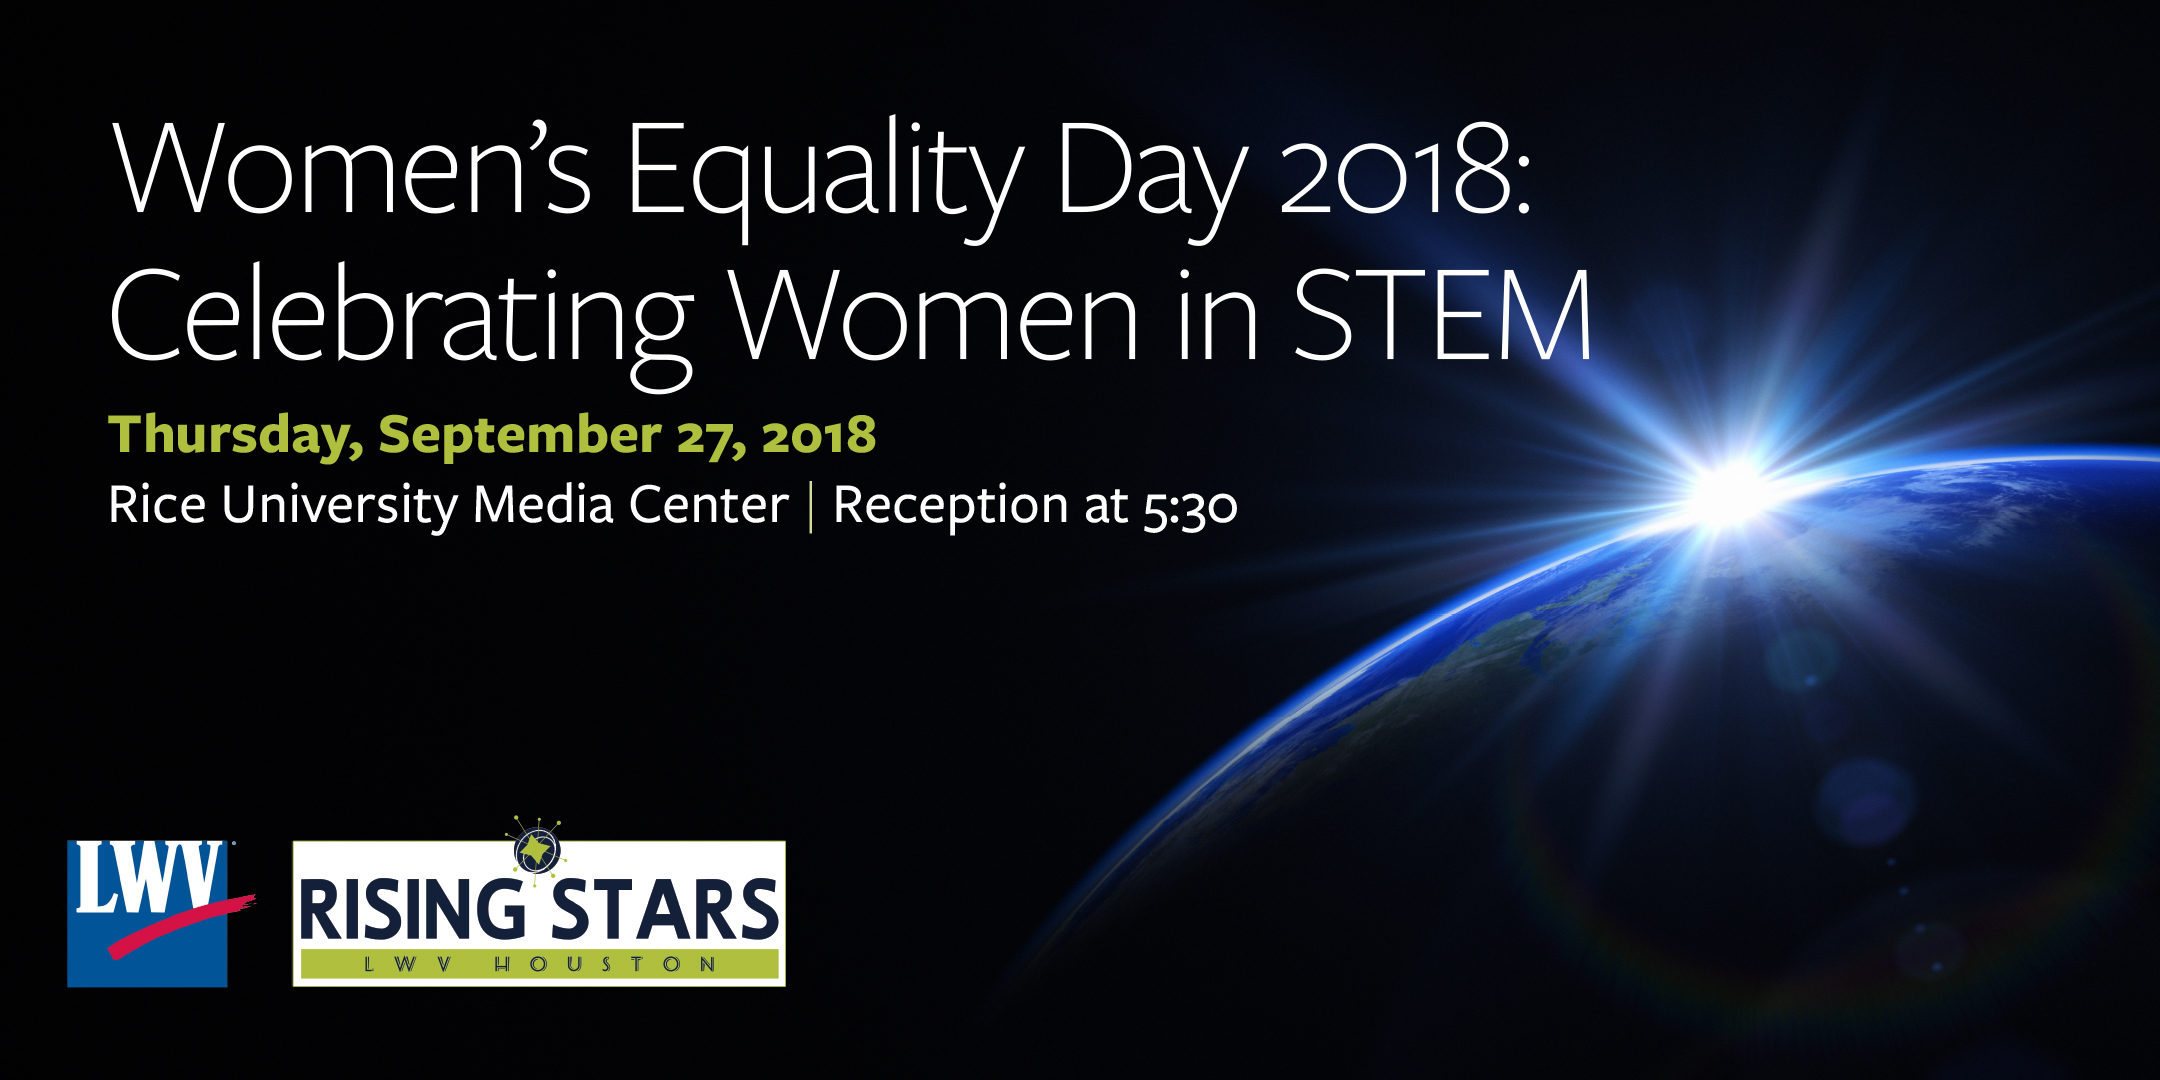 Women's Equality Day 2018: Celebrating Women in STEM @ Rice Media Center